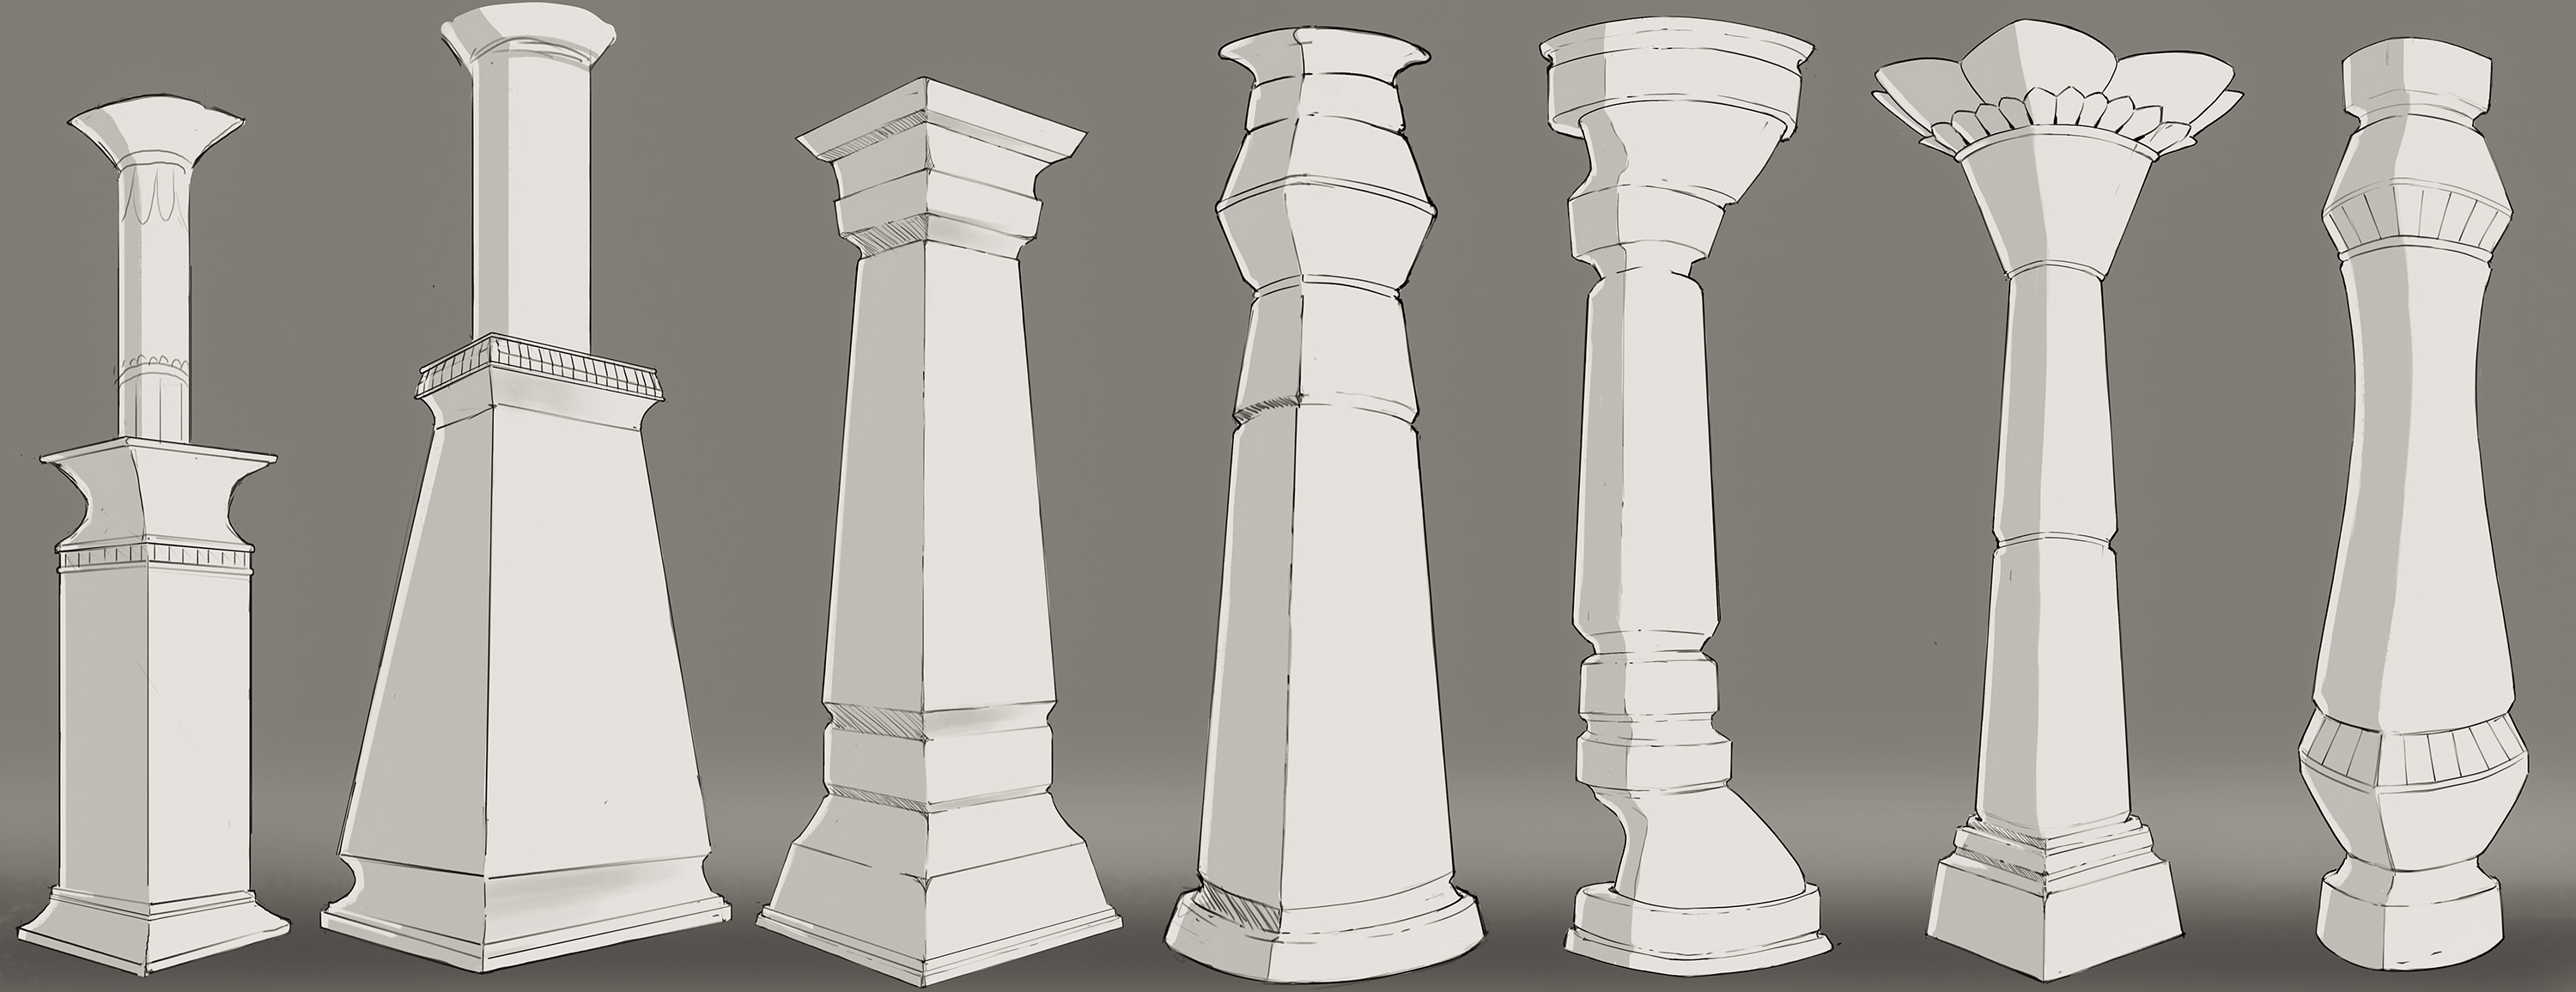 Pillar concepts. We knew early on in development that the level design would be both horizontal and vertical, and that pillars would be a great modular asset for it. My task was to explore some different shapes and aesthetics for the pillars.